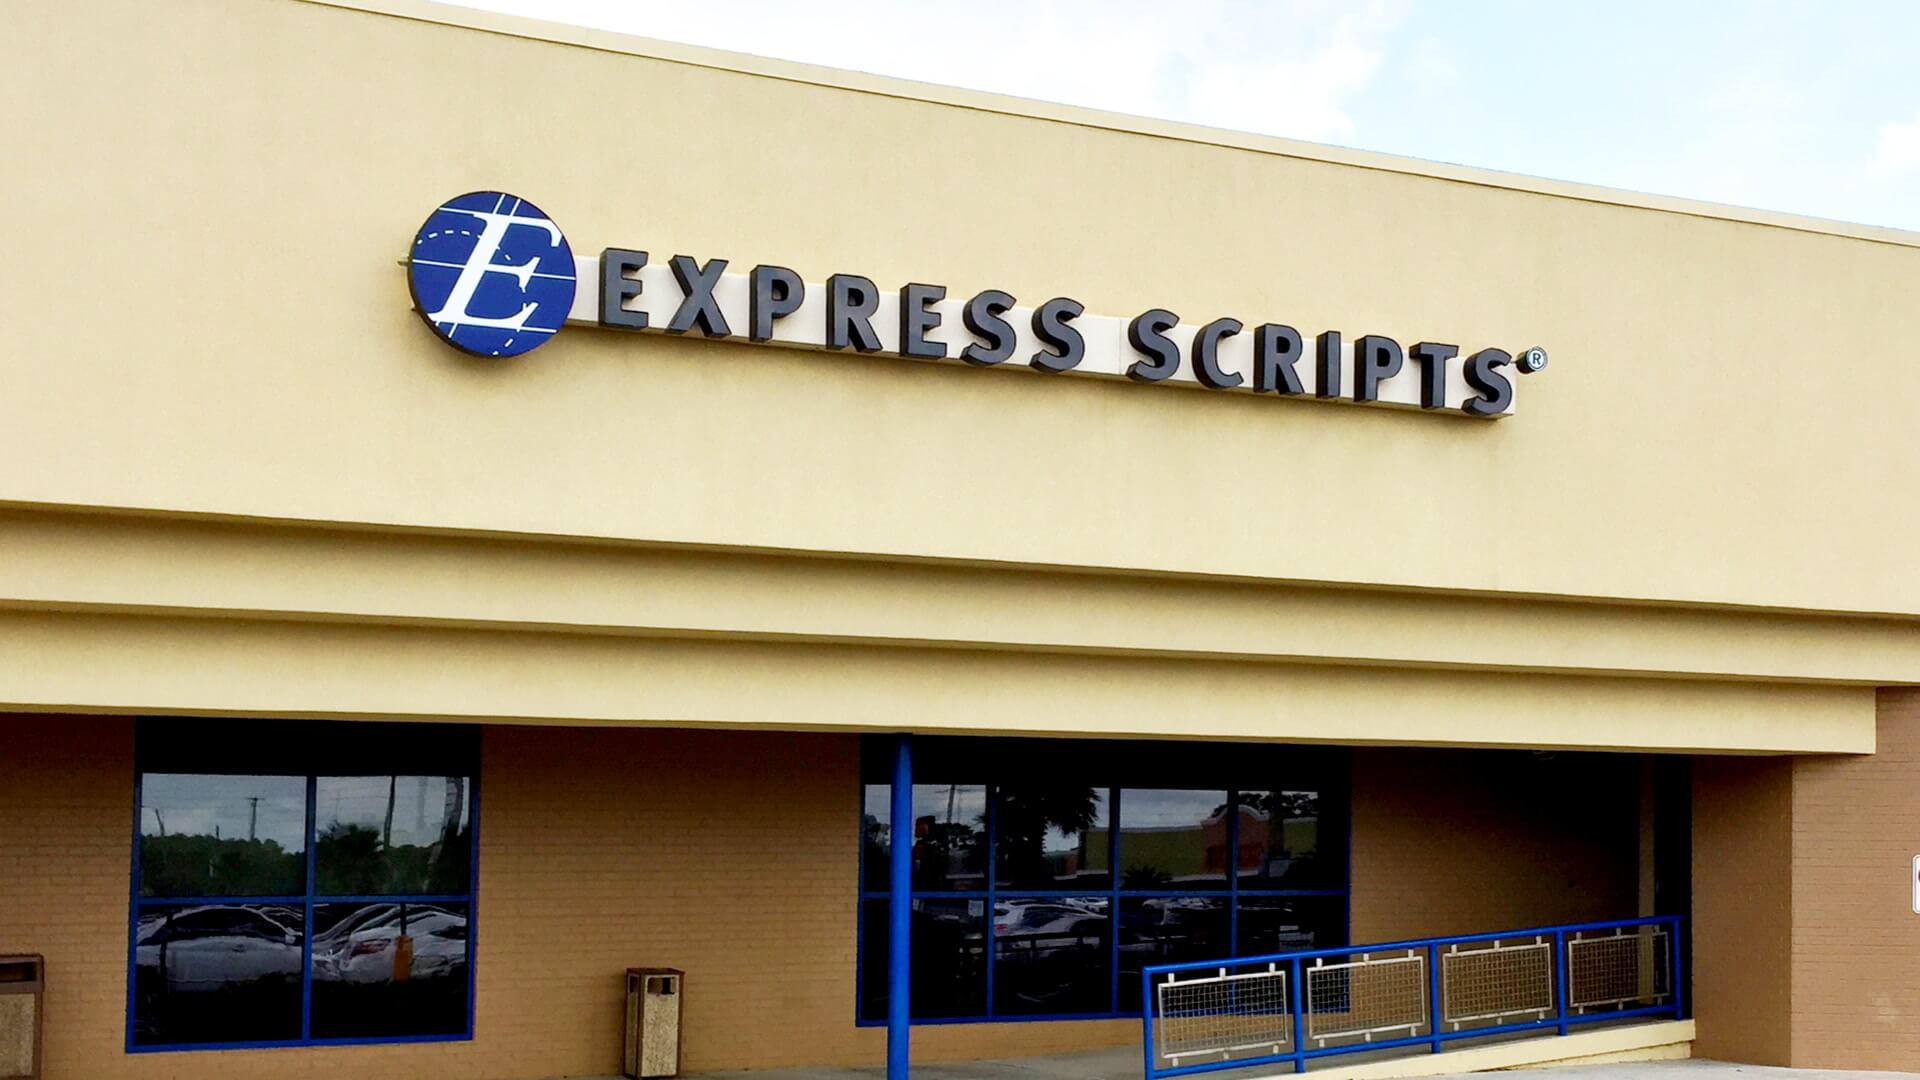 Cigna Buys Express Scripts in a $54 Billion Deal | GOBankingRates